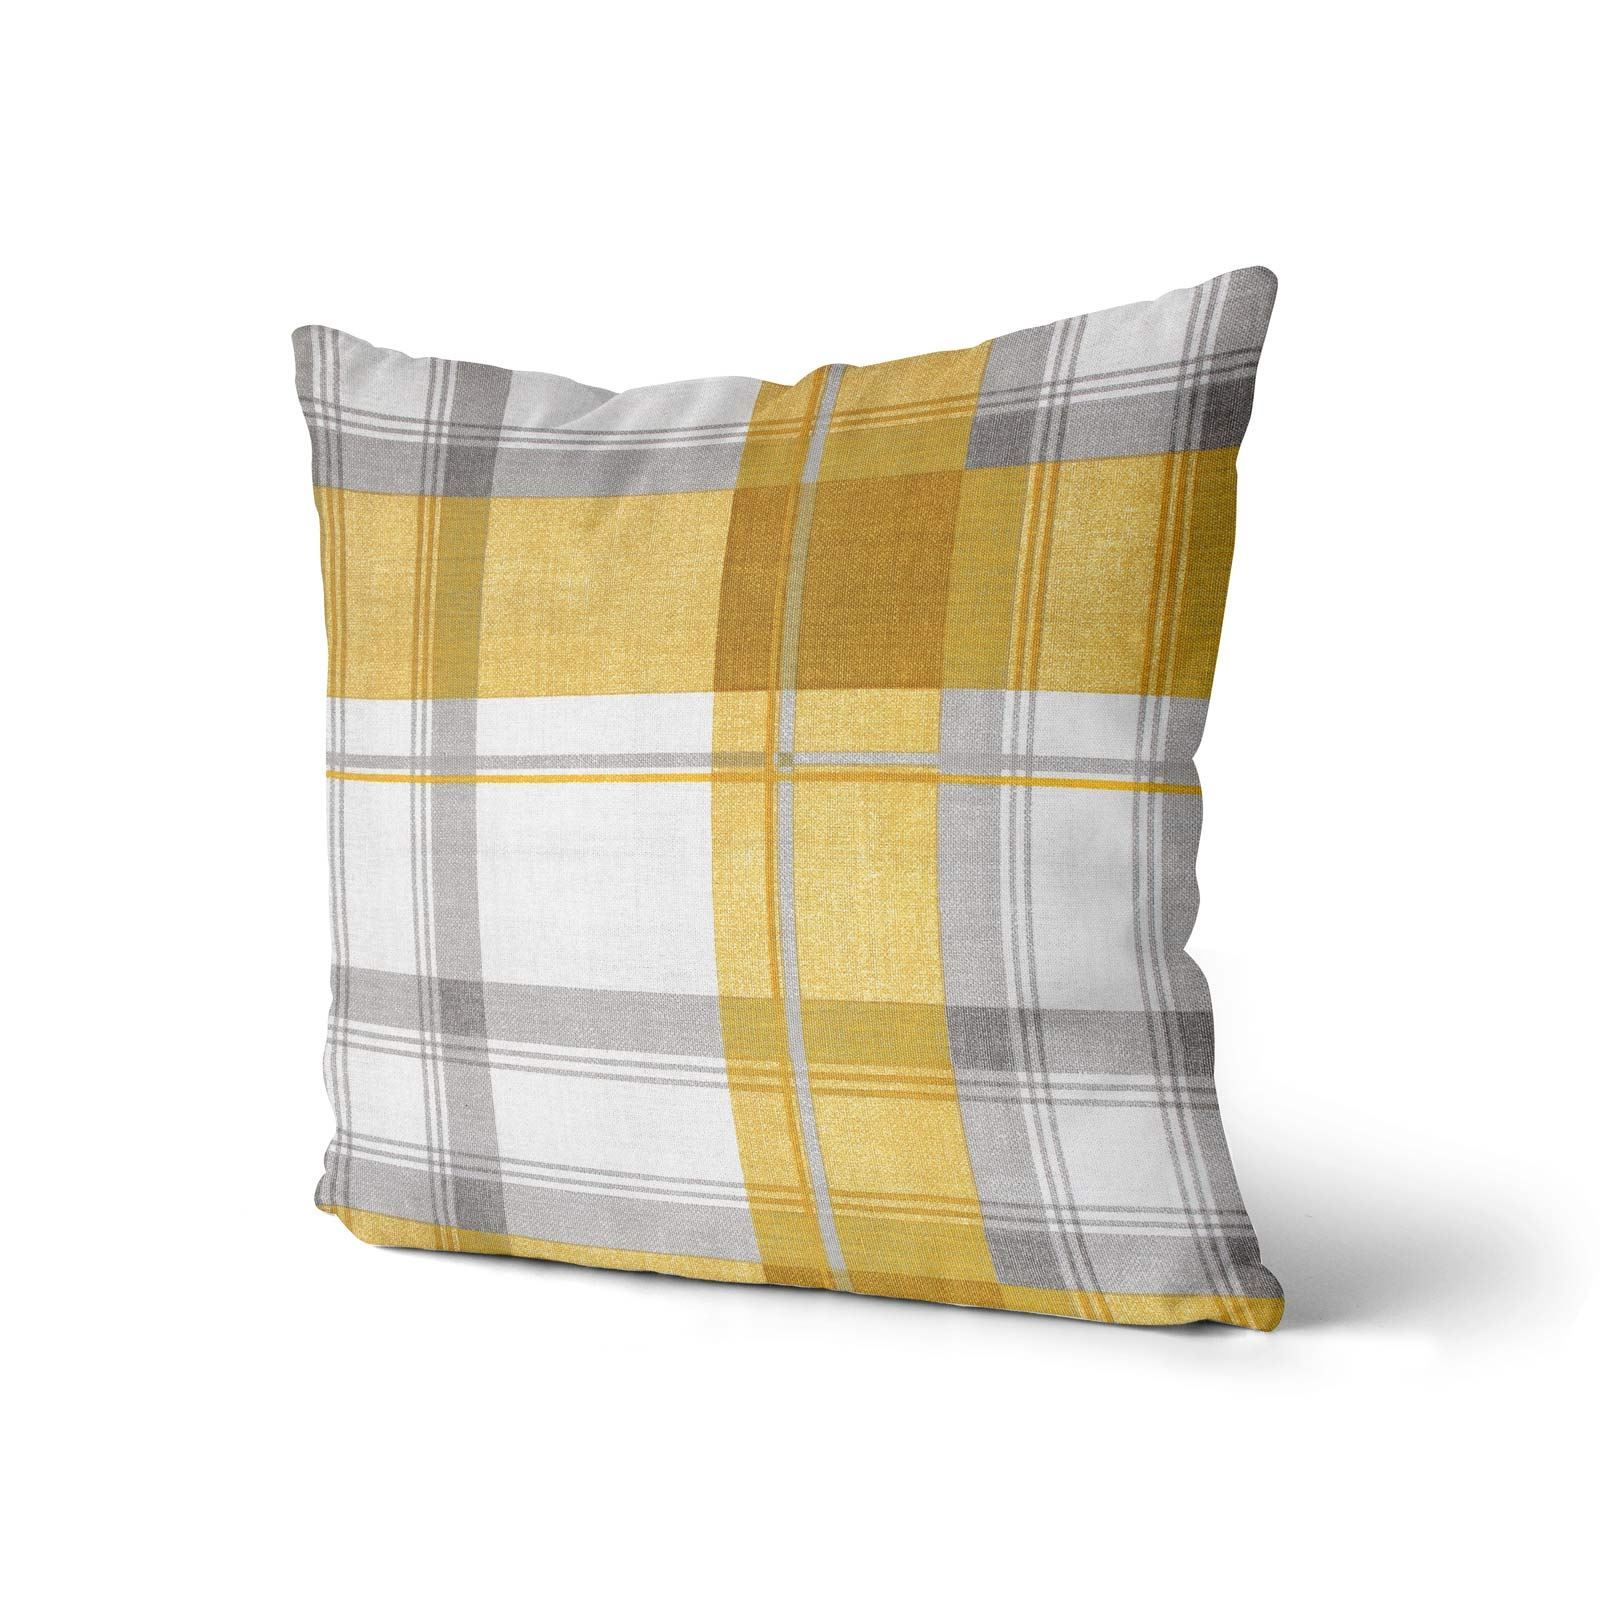 Grey-Ochre-Mustard-Cushion-Cover-Collection-17-034-18-034-Covers-Filled-Cushions thumbnail 23